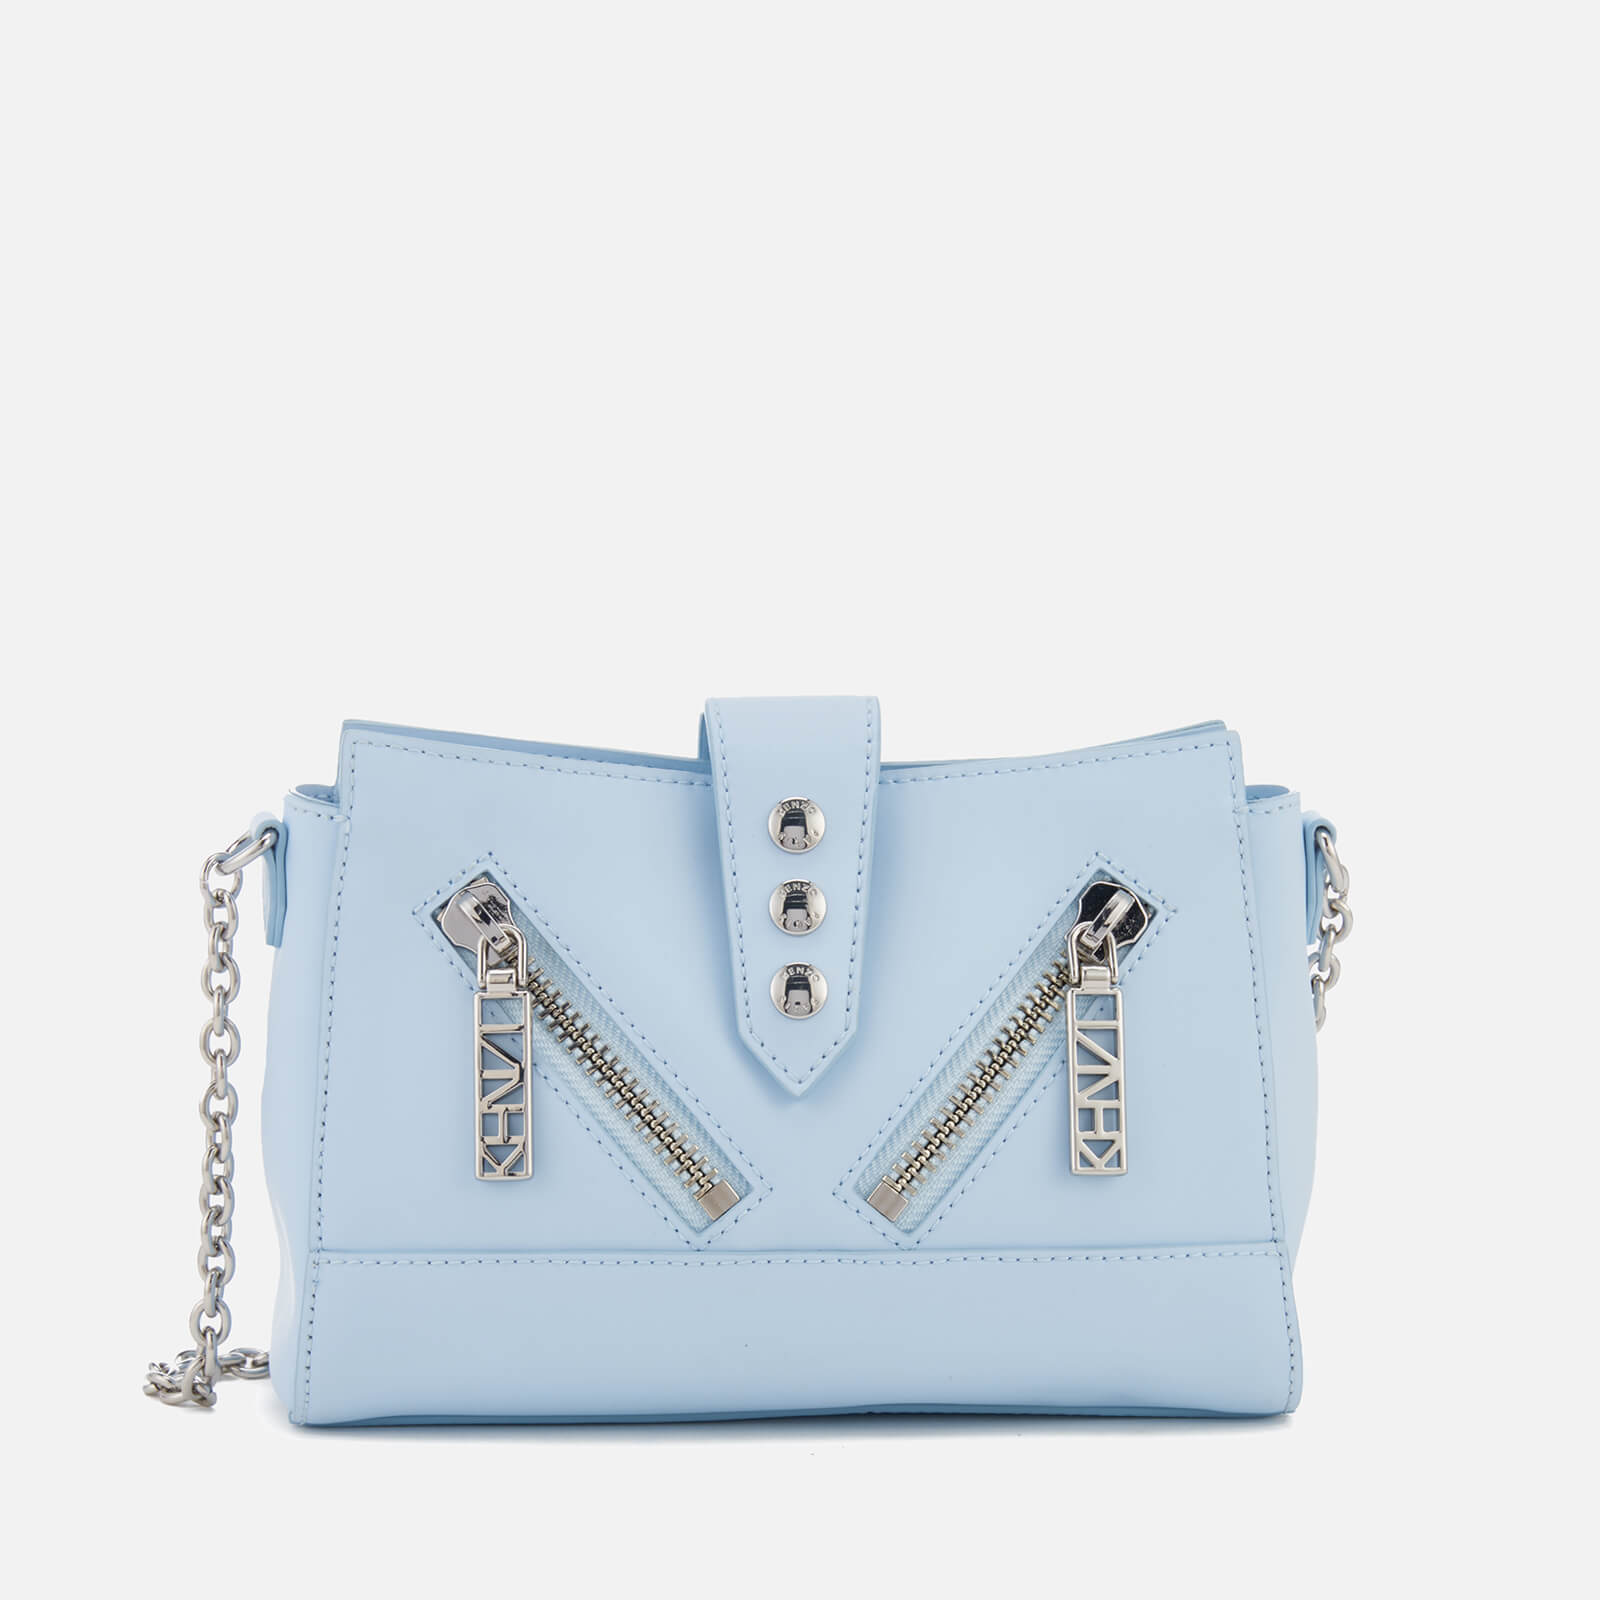 4a286c7b0cd KENZO Women's Kalifornia Mini Shoulder Bag - Sky Blue - Free UK Delivery  over £50